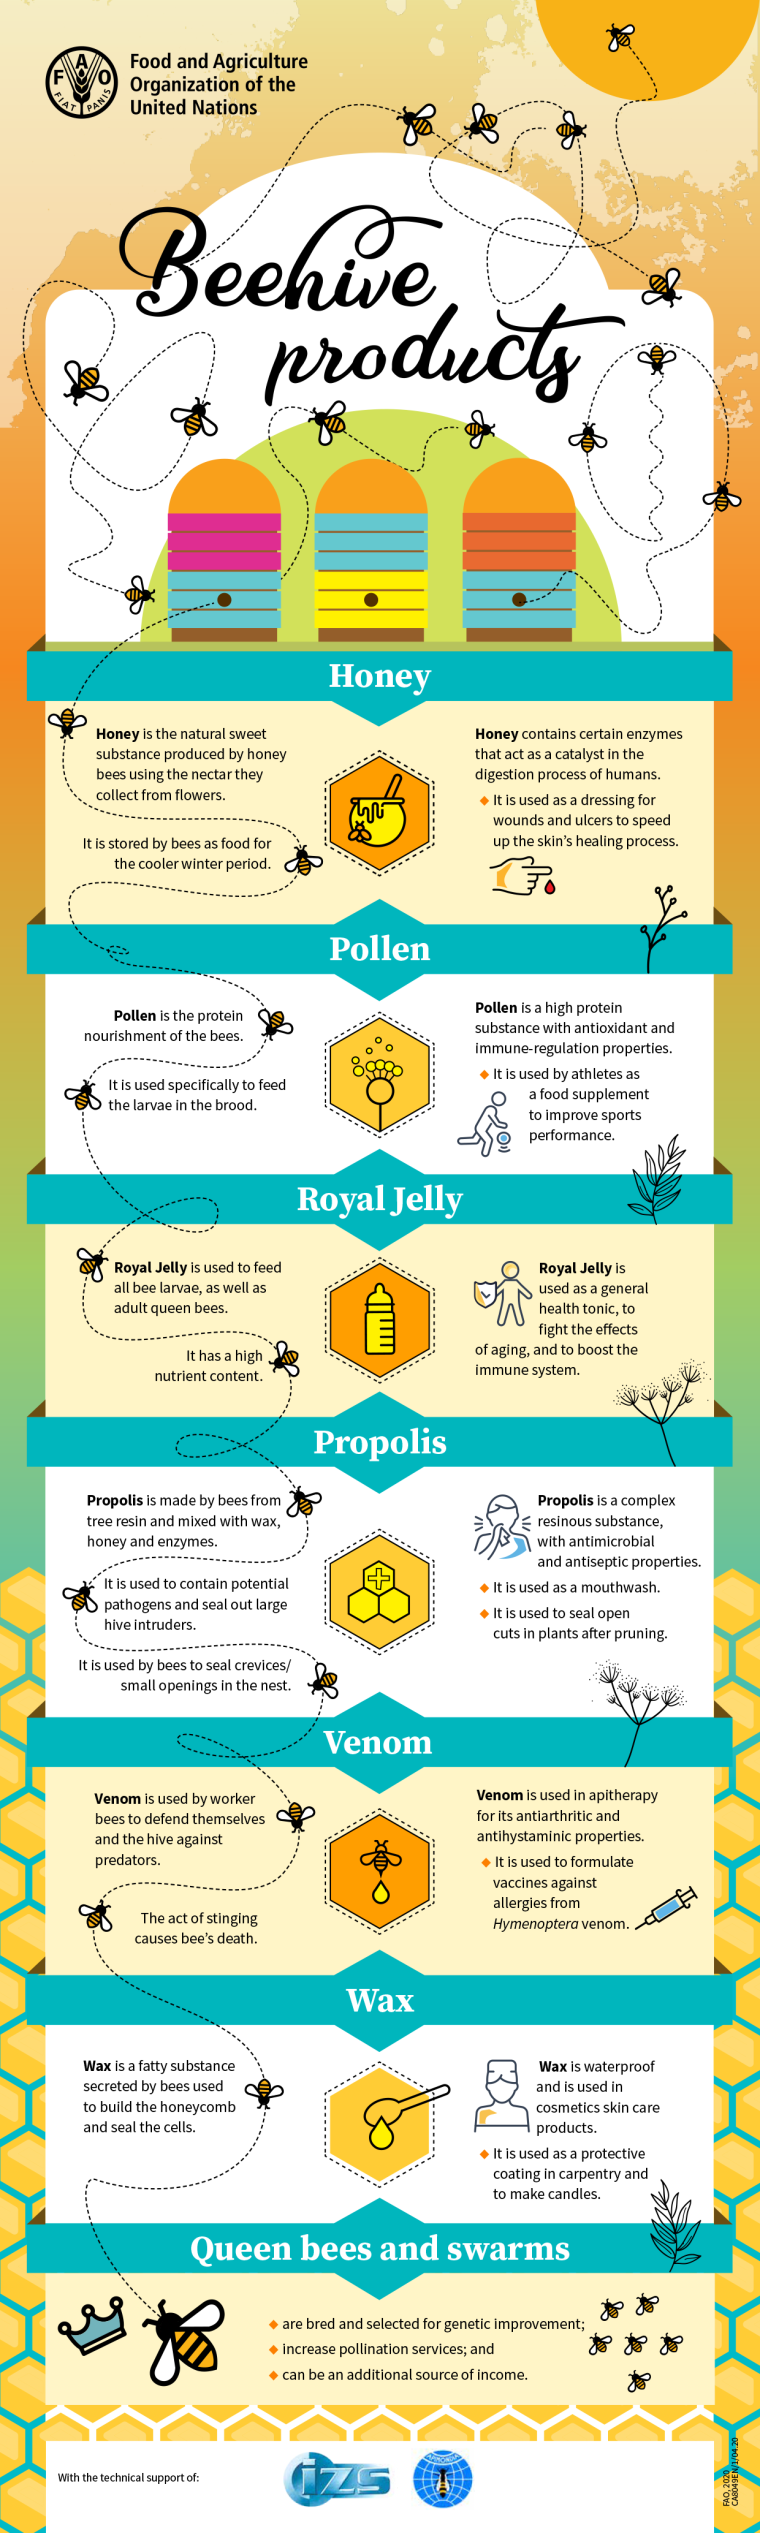 bees pollinators bee facts beehive products